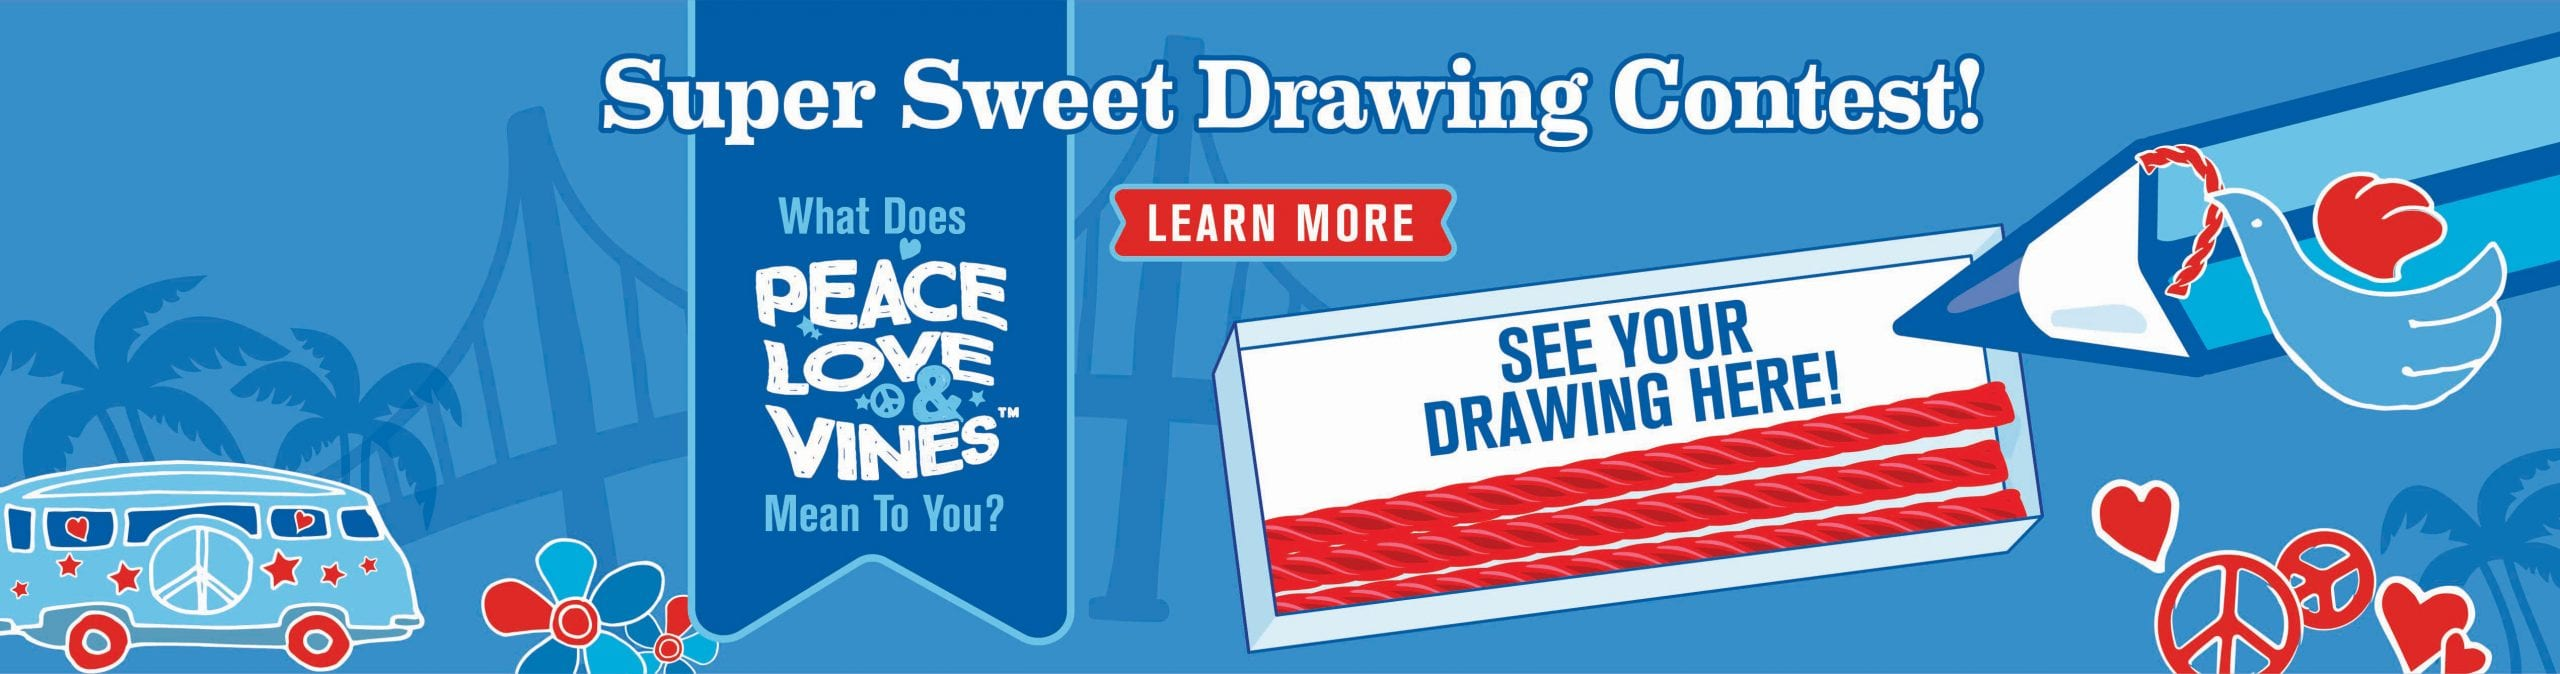 Super Sweet Drawing Contest